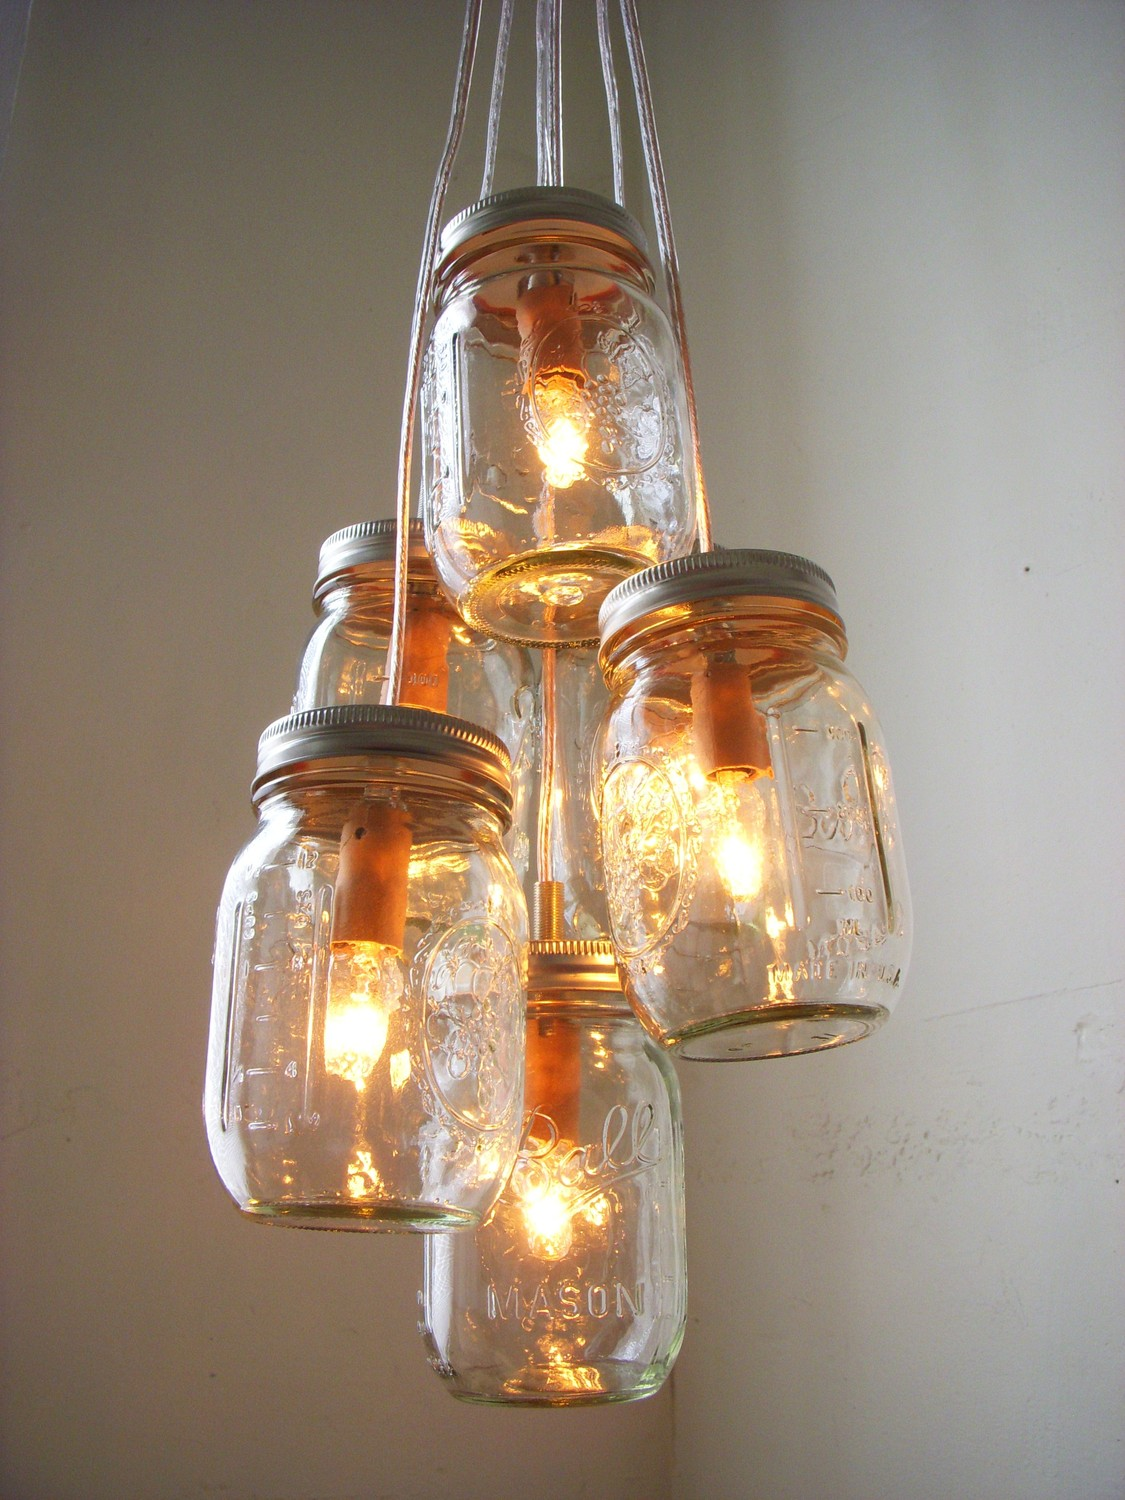 How to create mason jar lighting fixtures homesfeed pendant lamp made from mason jar arubaitofo Gallery